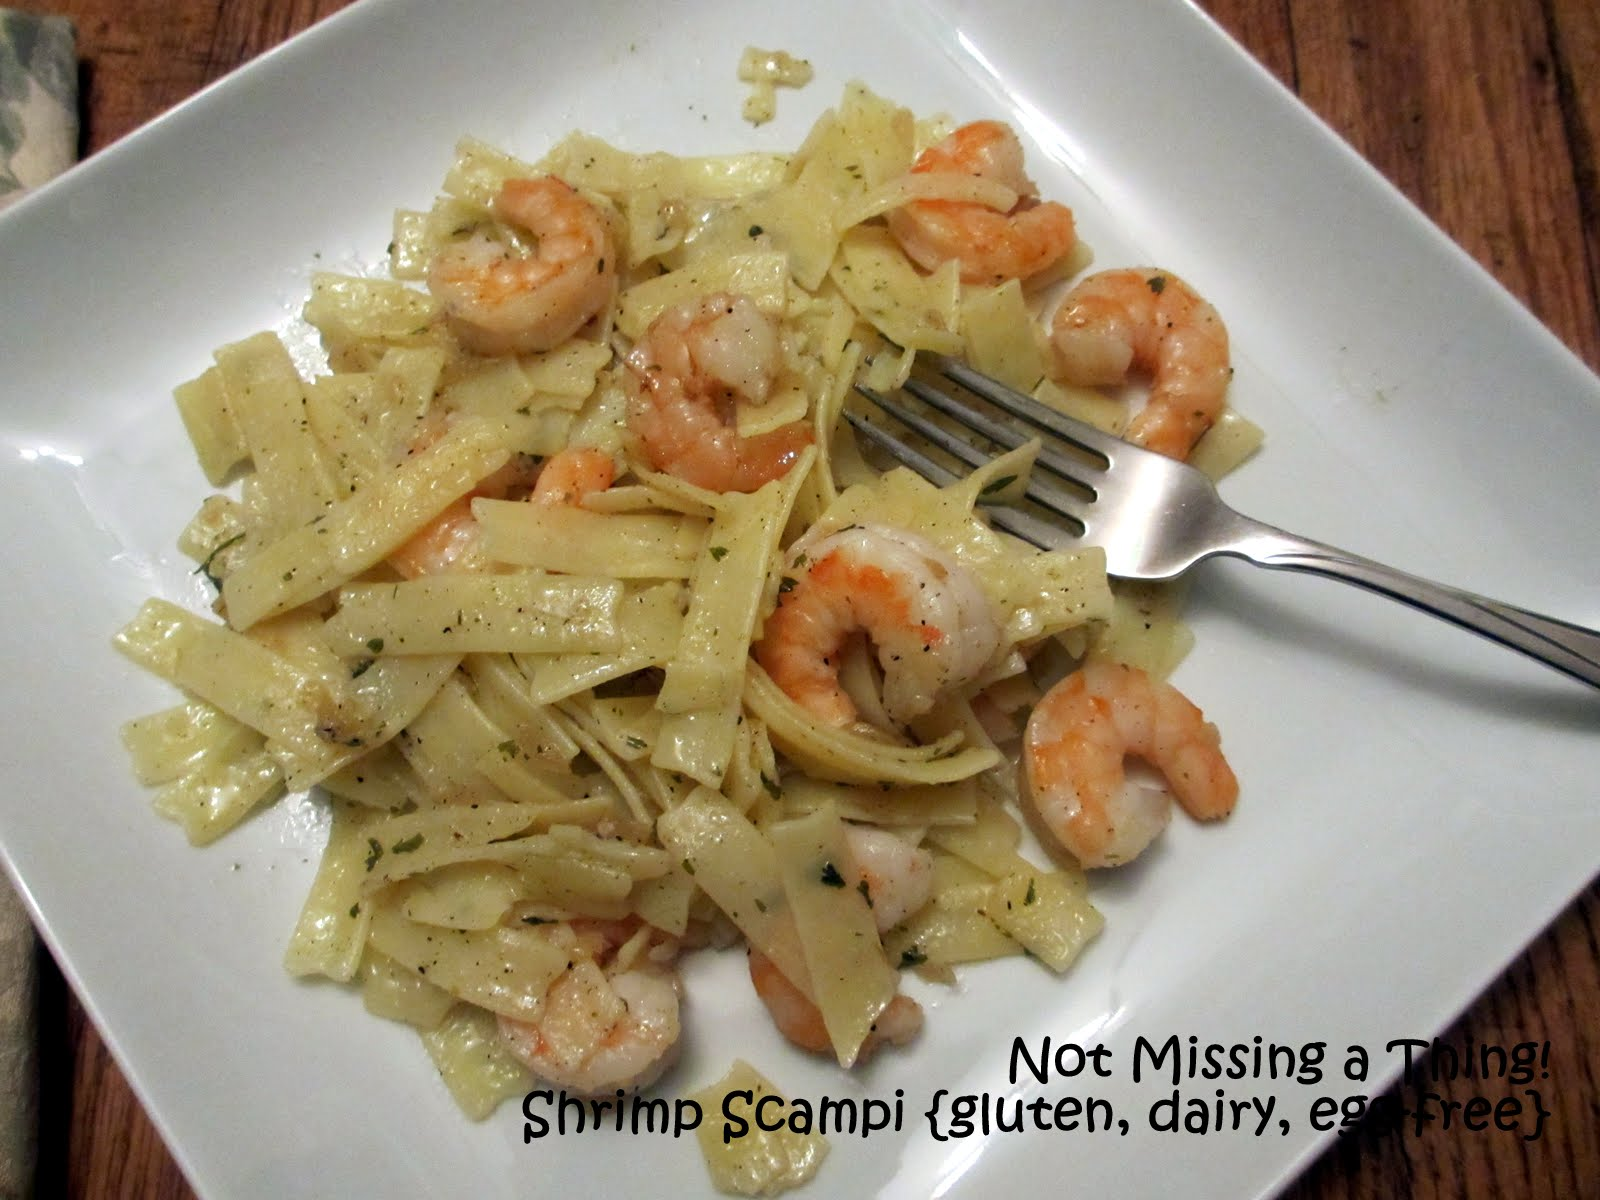 Menu For Olive Garden: Not Missing A Thing! Allergy Friendly Cooking: Shrimp Or